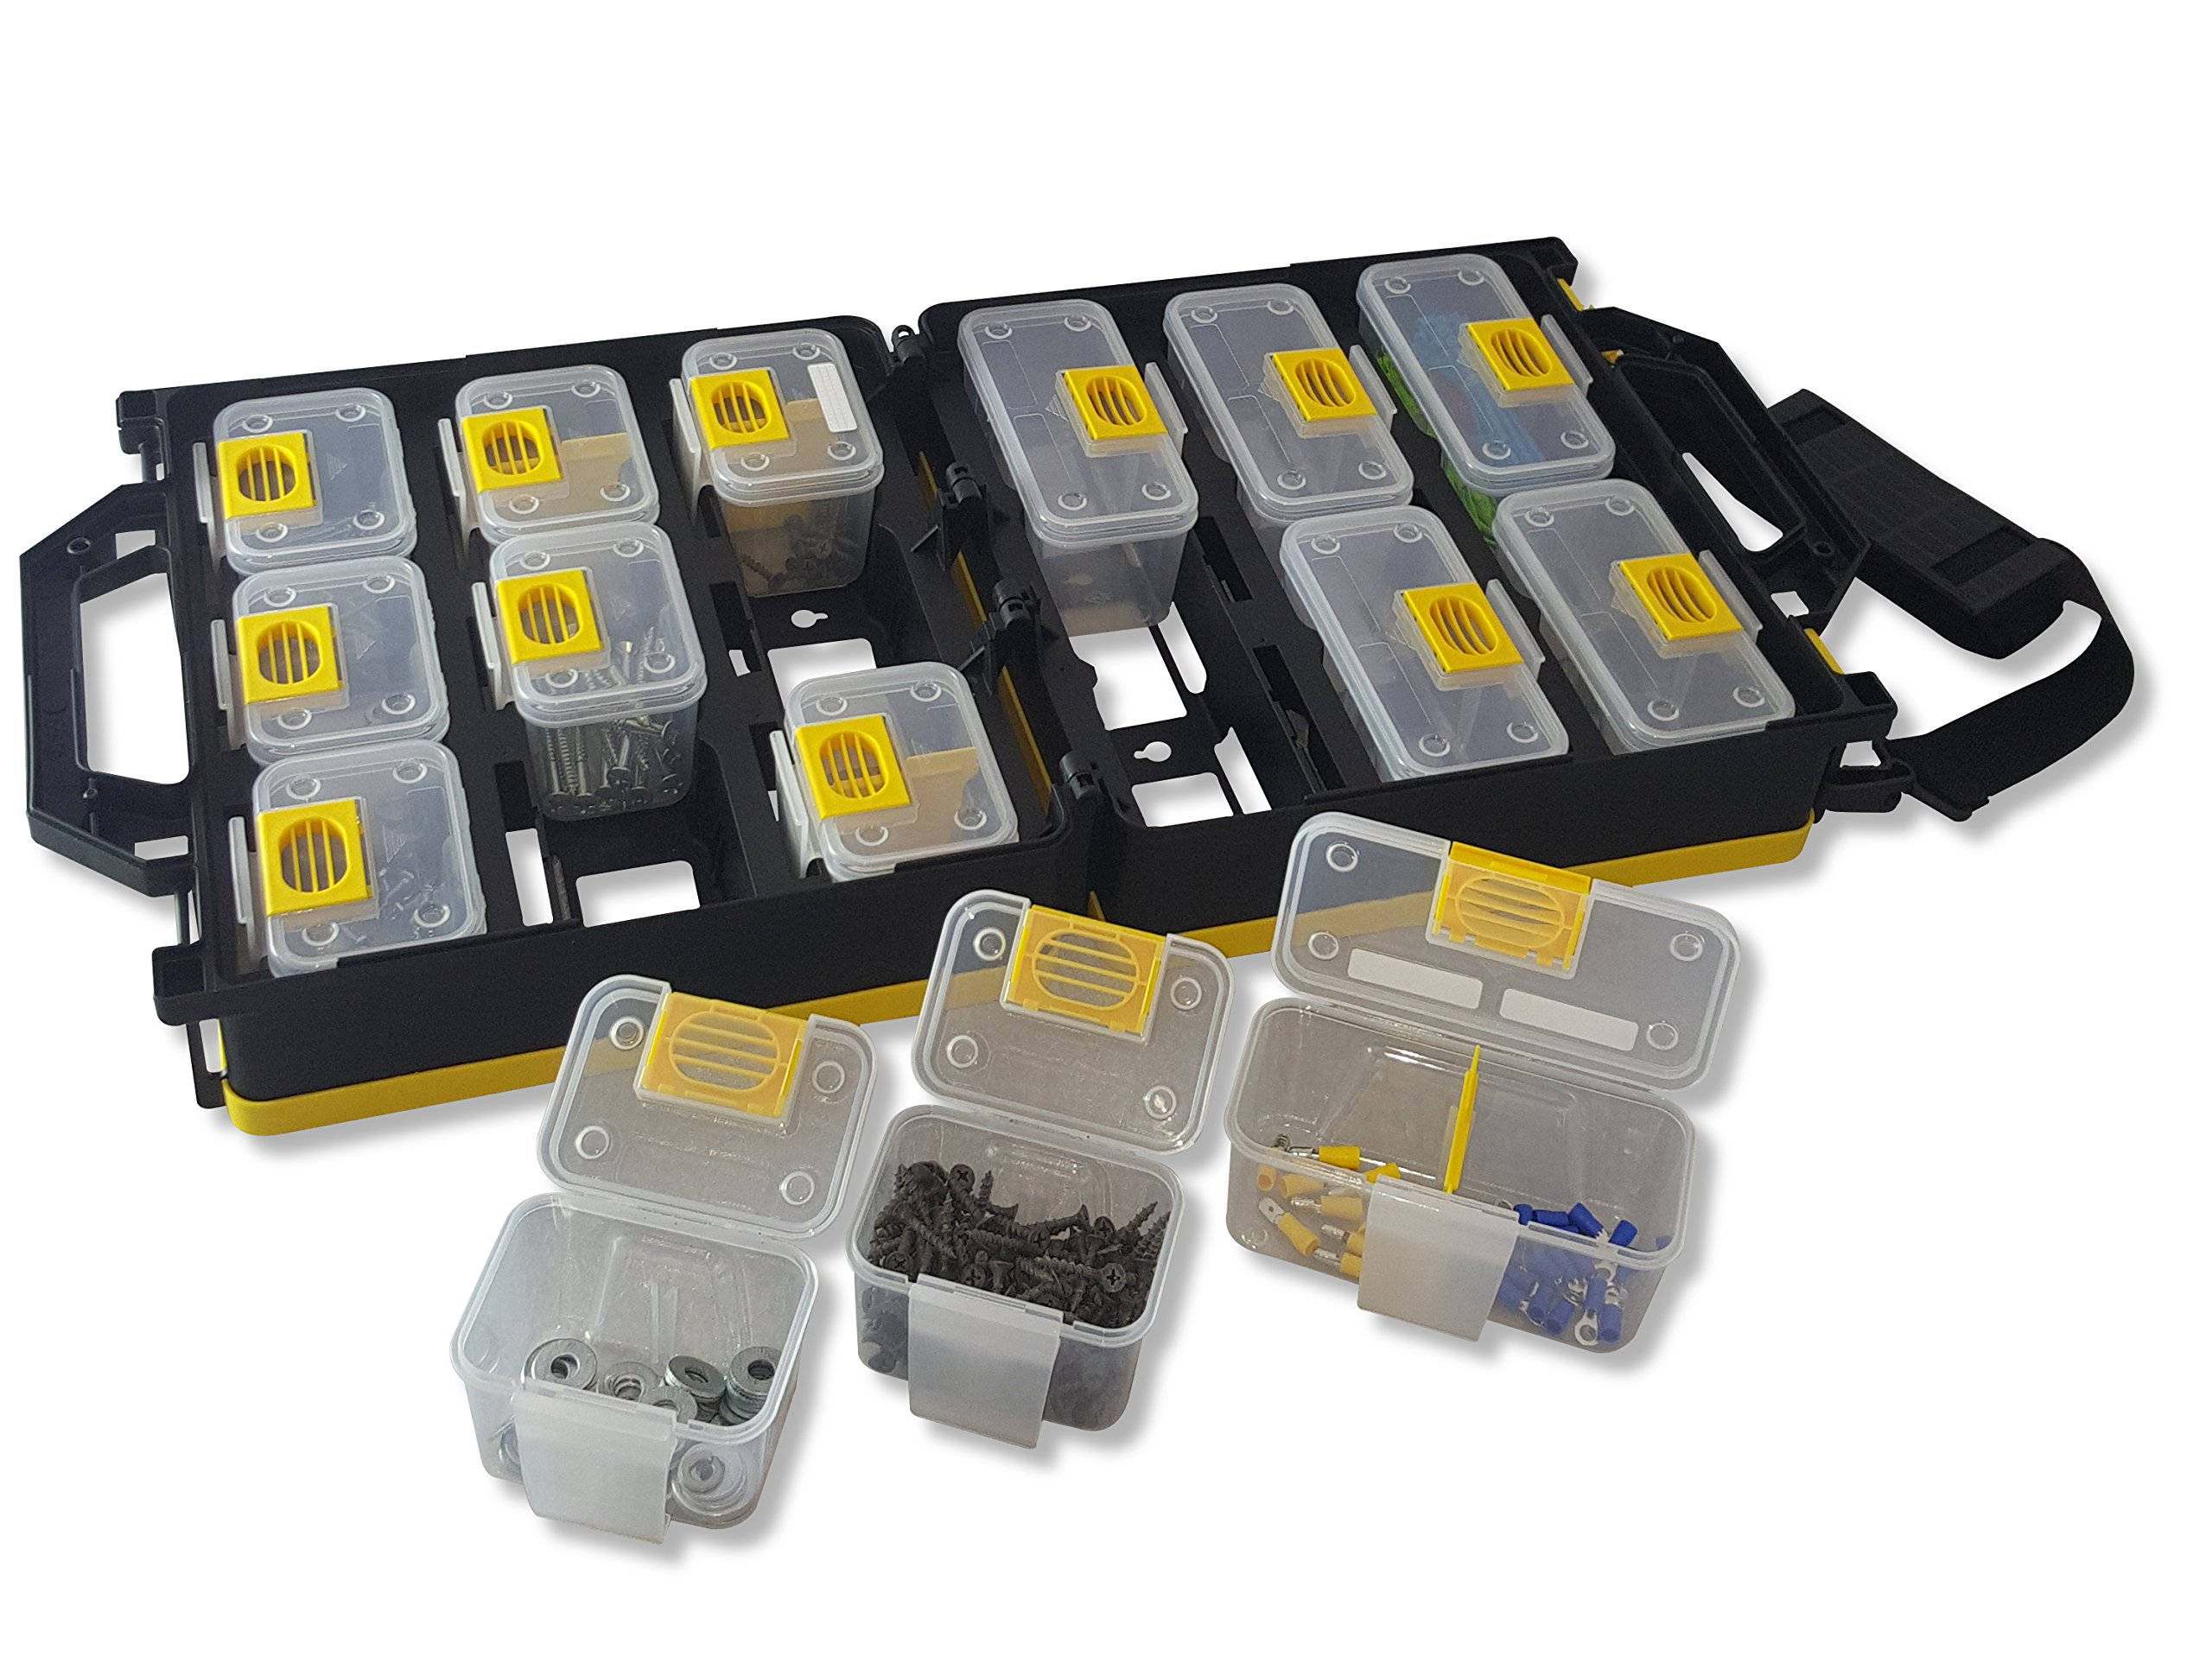 WorkVanEquipment Mobile Hardware Case Tackle Box with Removable Compartment Organizer and Shoulder Strap - US Patented by Work Van Equipment